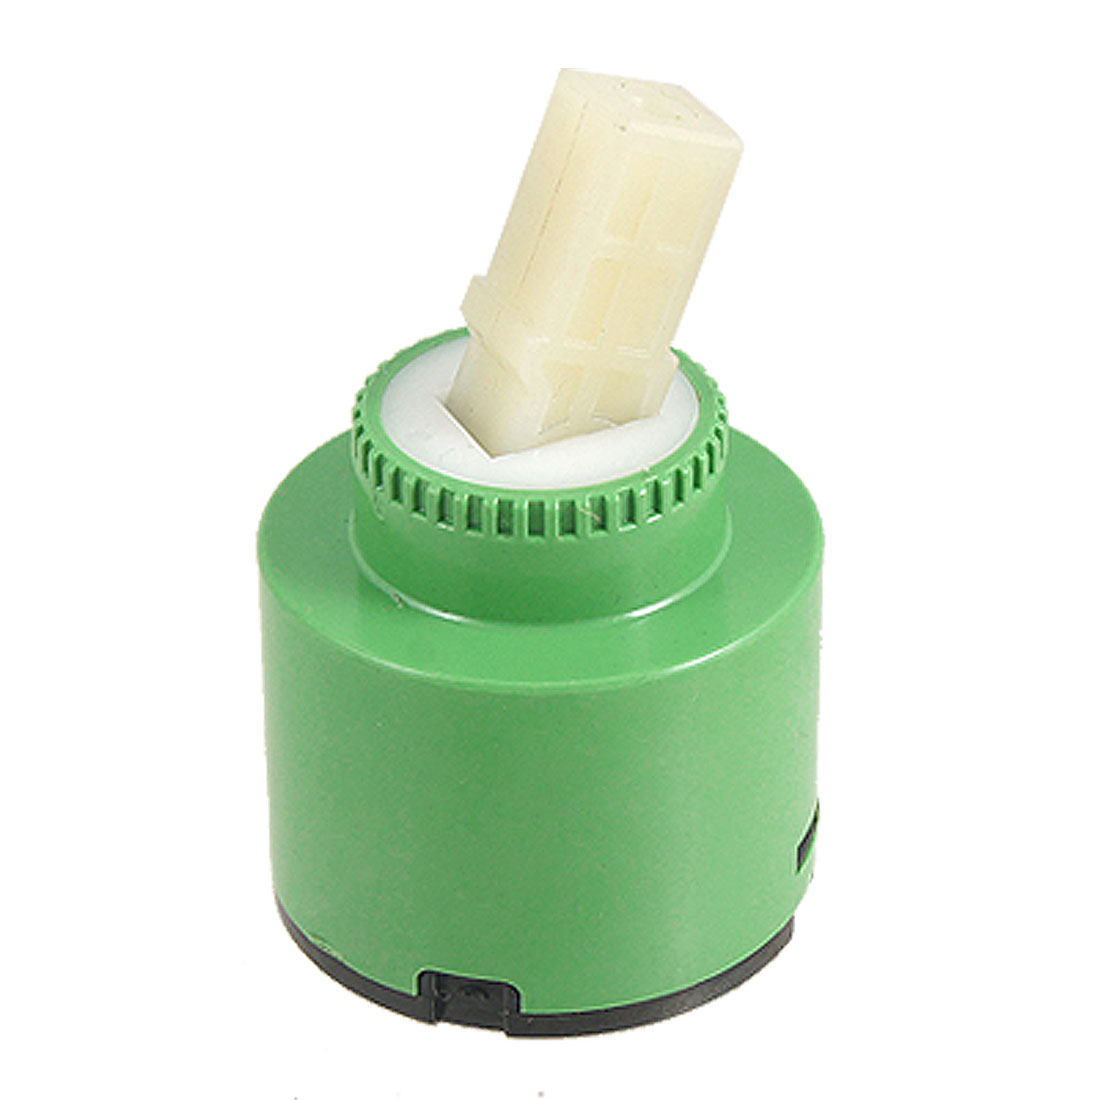 Faucet Water Tap Faucets Ceramic Cartridge Valve Green